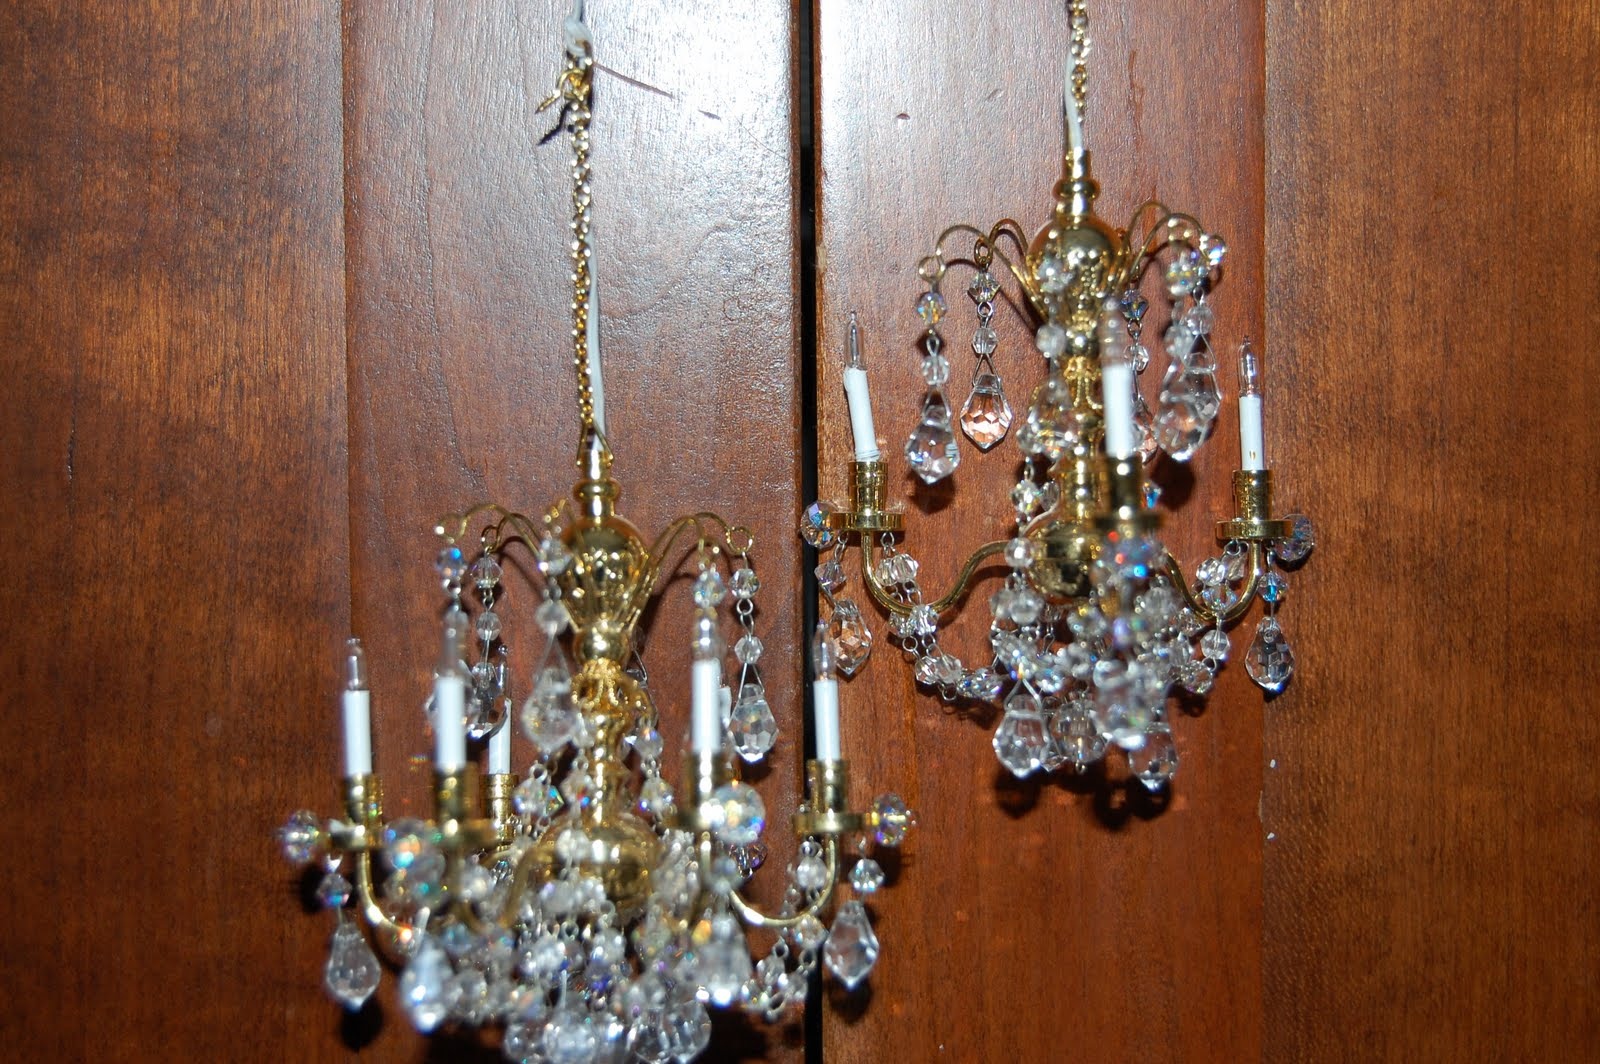 Dreaming of paris crystal chandelier have arrived i think these are the loveliest dollhouse chandeliers i bought a 6 arm chandelier and a 3 arm chandelier for my soon to be french dollhouse aloadofball Choice Image